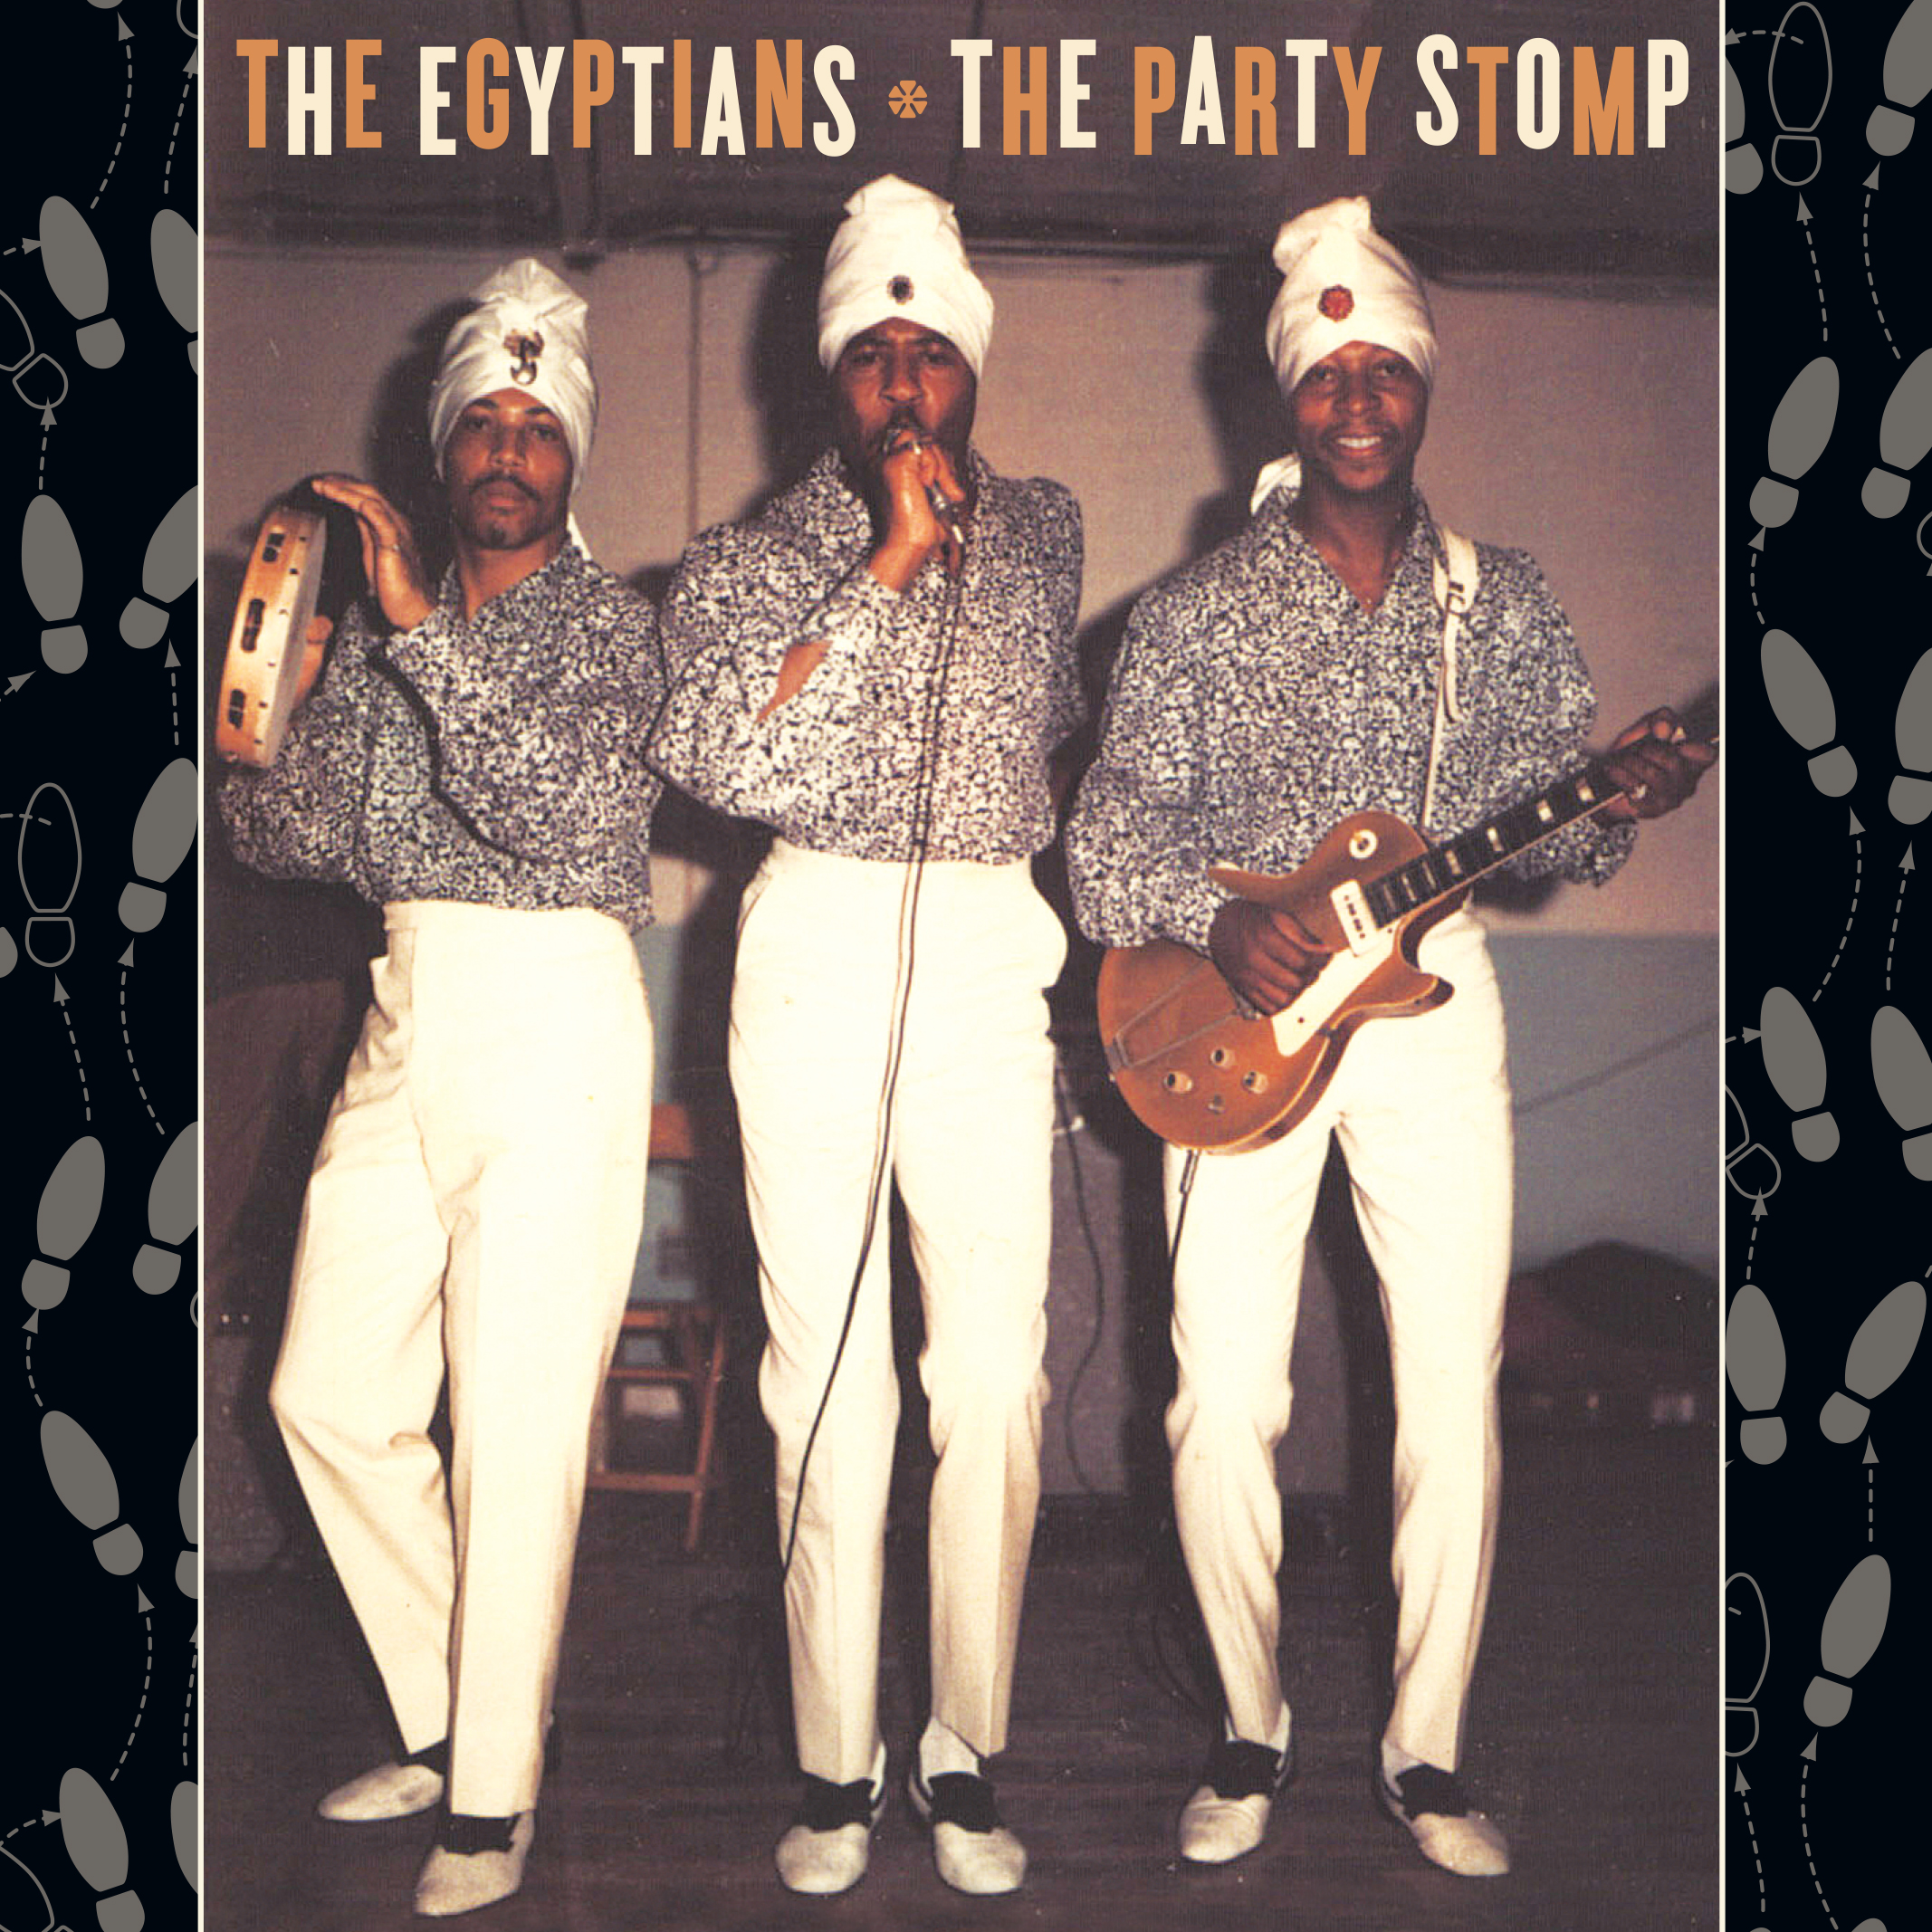 The Egyptians - The Party Stomp 45 sleeve